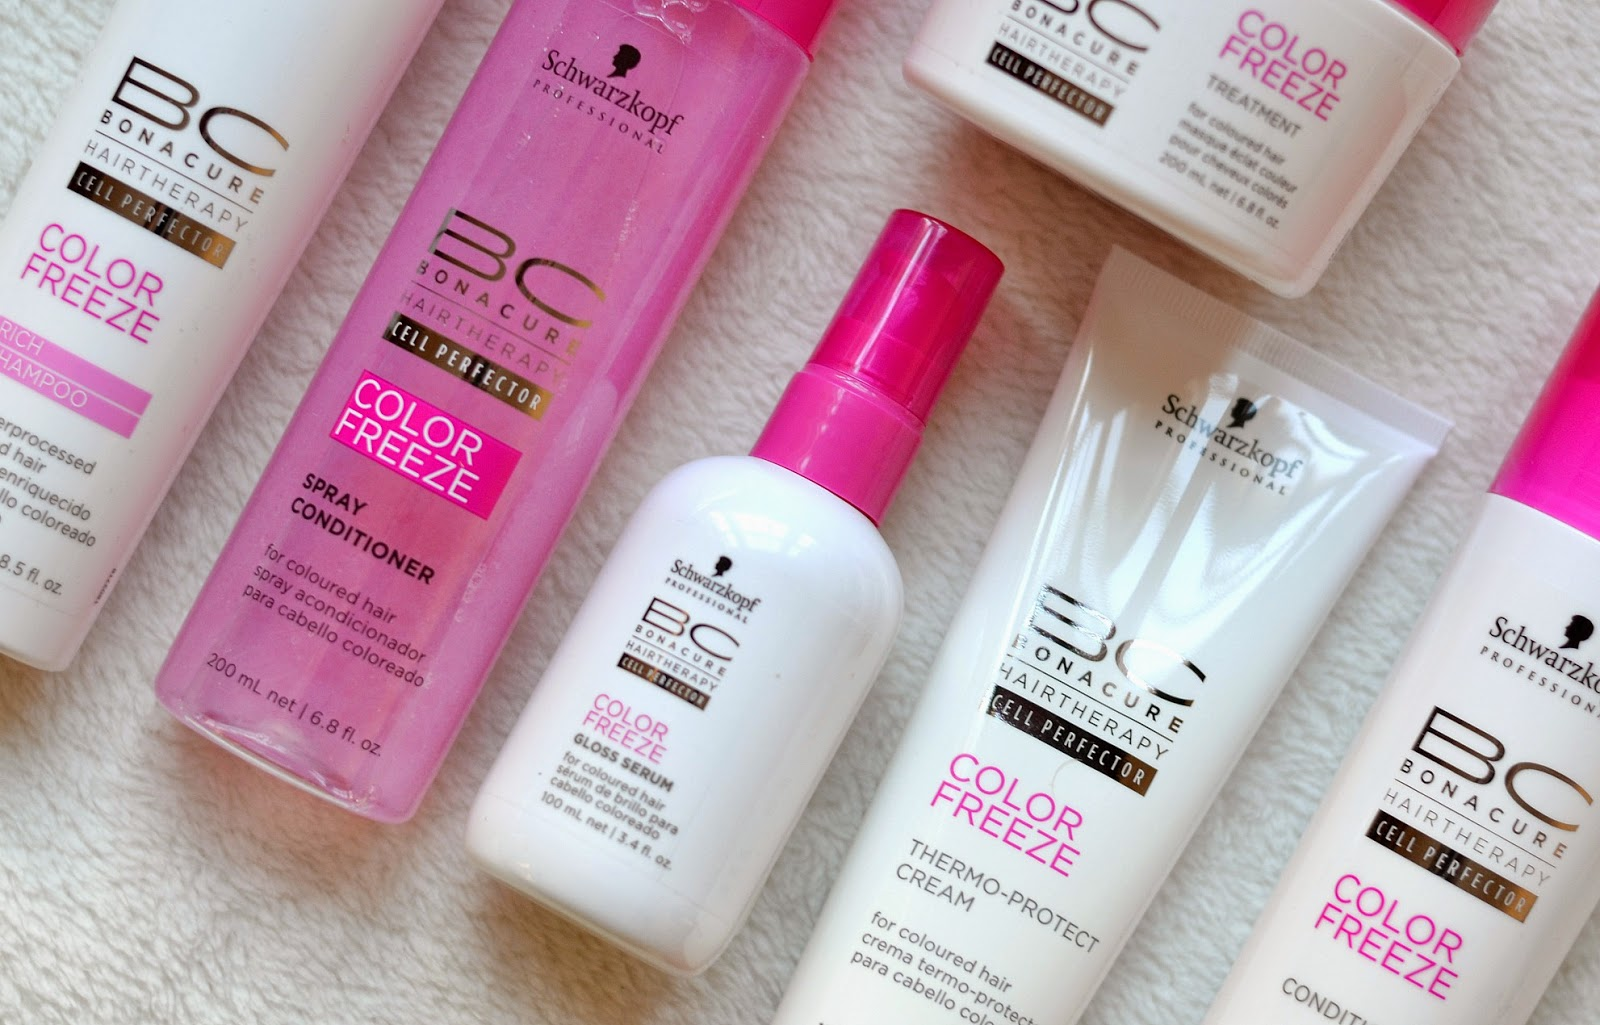 New from schwarzkopf professional bonacure color freeze for Salon shampoo